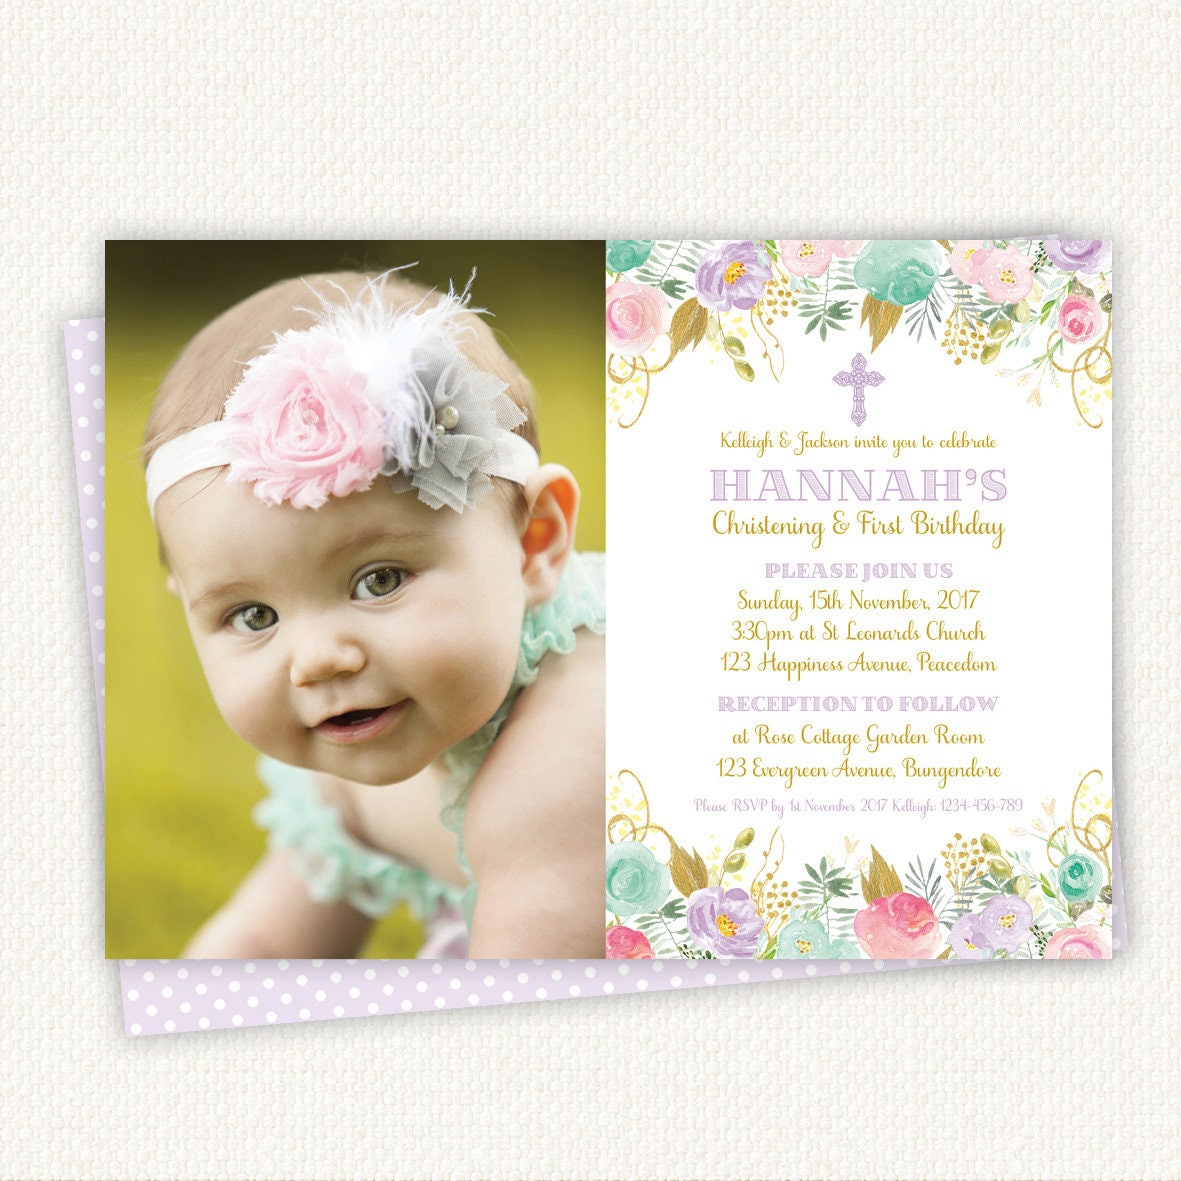 Christening Birthday Invitation baptism birthday invitation | Etsy